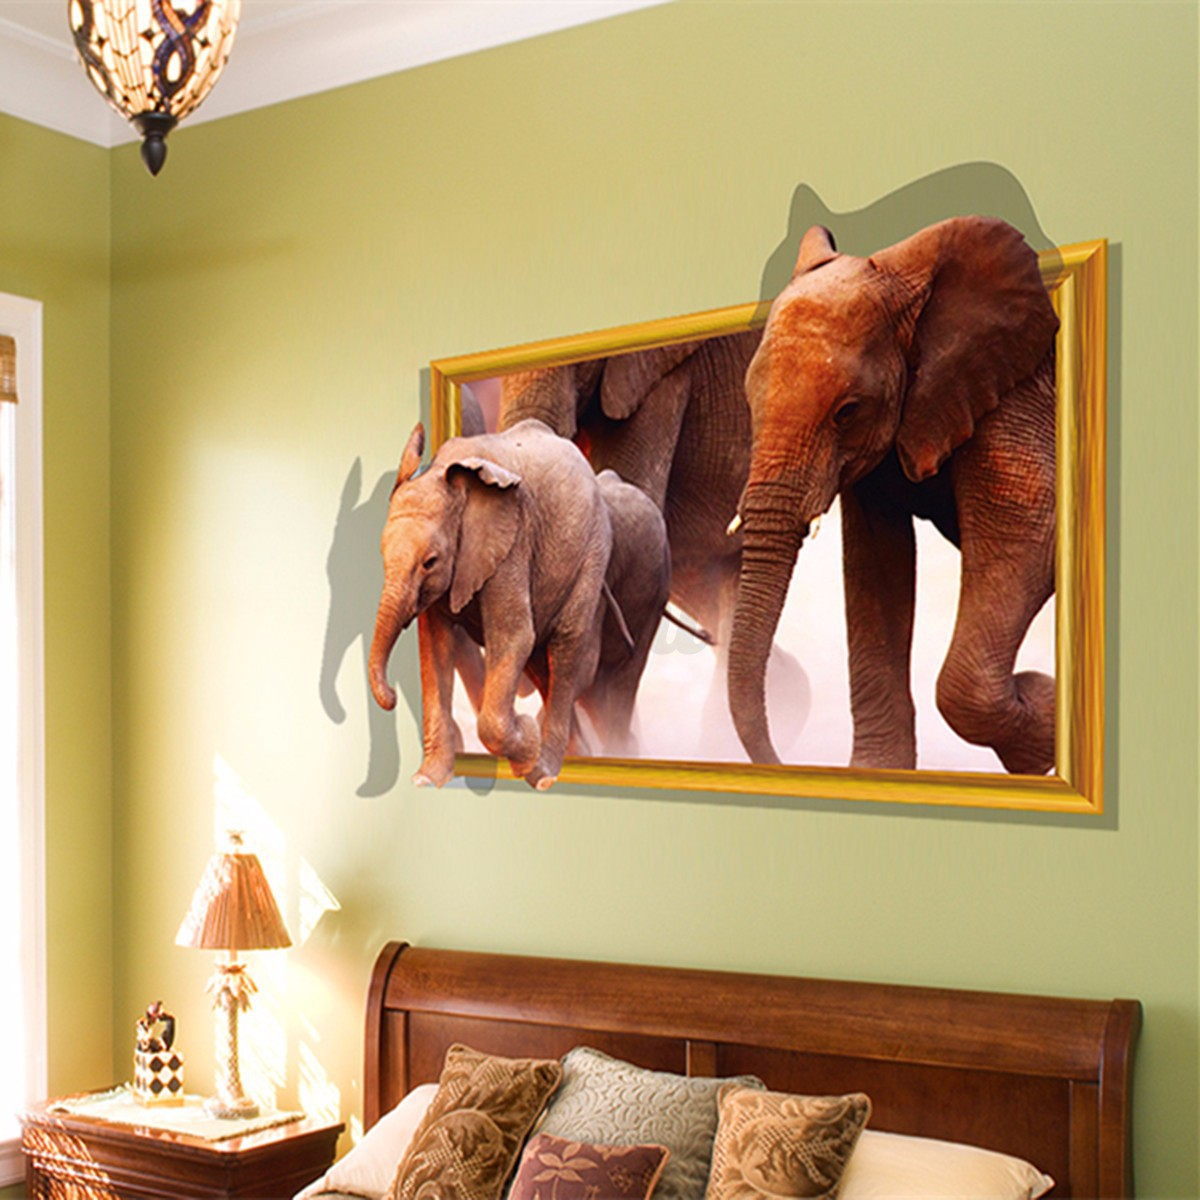 3d removable animals window view wall sticker decals mural for Sticker mural 3d